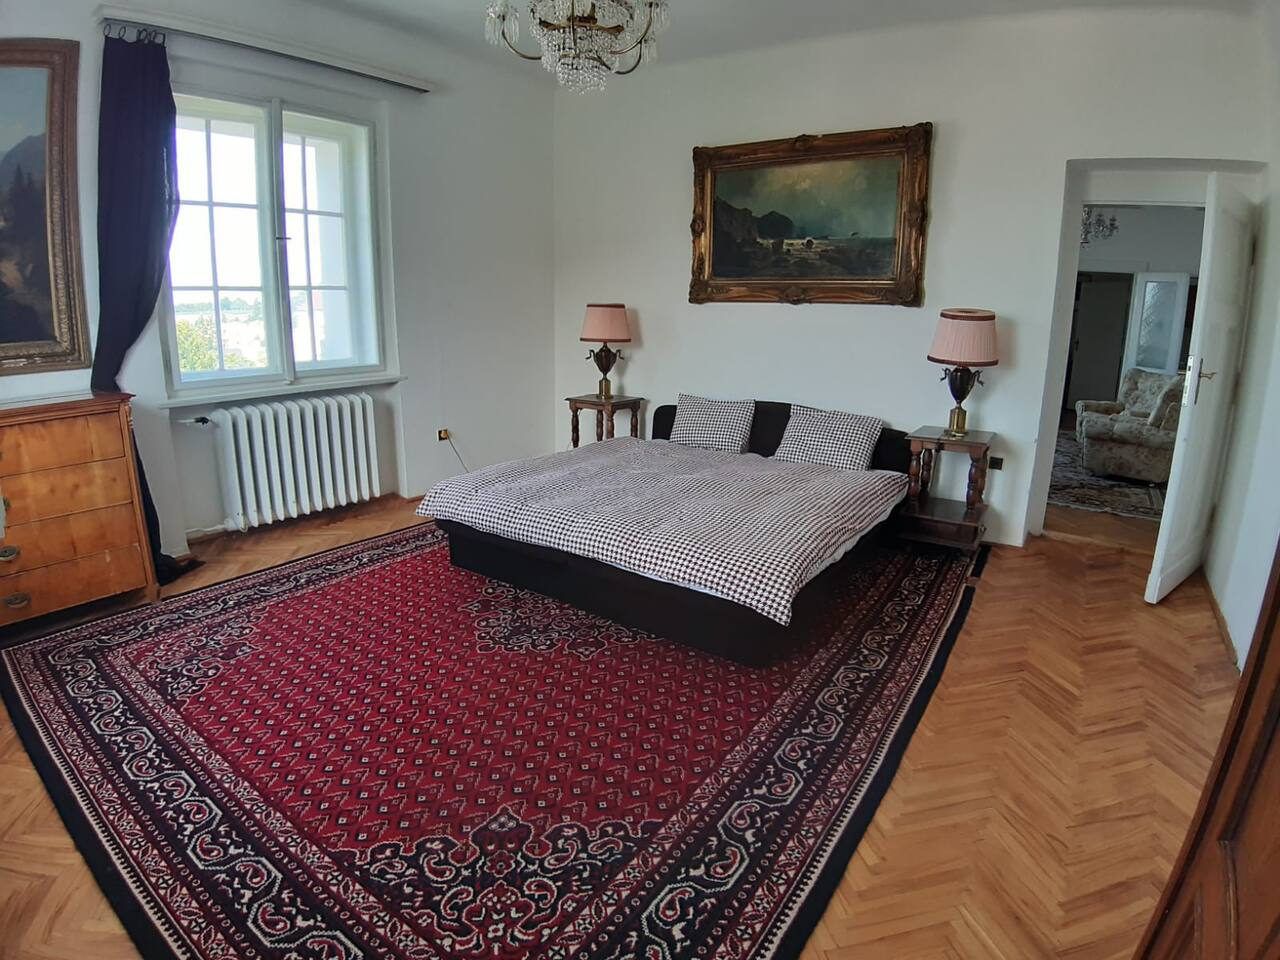 A beautiful and luxurious room on the top floor of a historic villa in a top neighborhood of Prague close to the river.  Full size kitchen, lovely view and a large terrace attached to a living room.